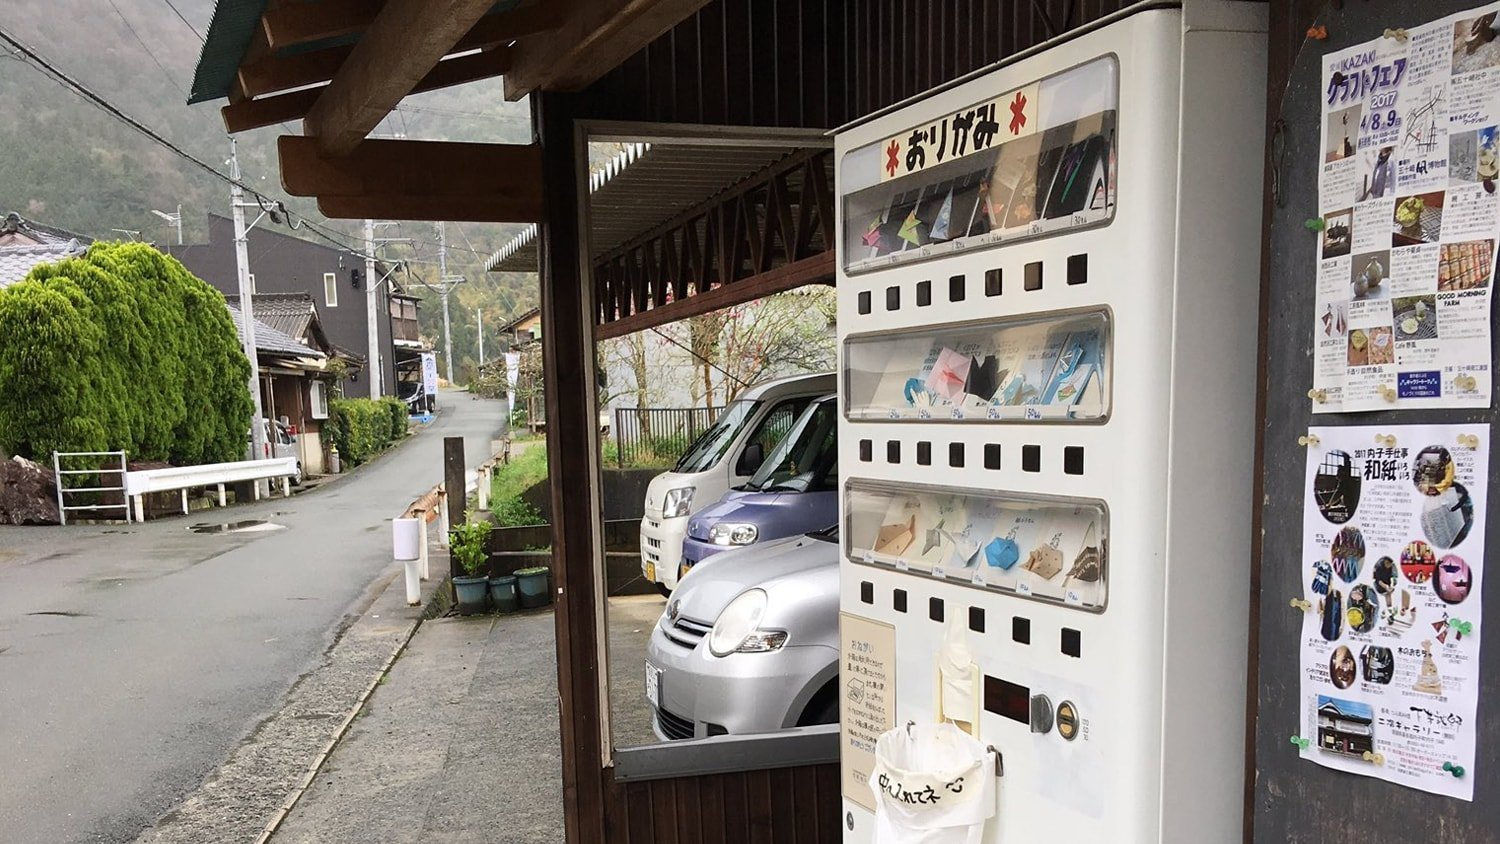 Vending Machine in Uchiko Japan